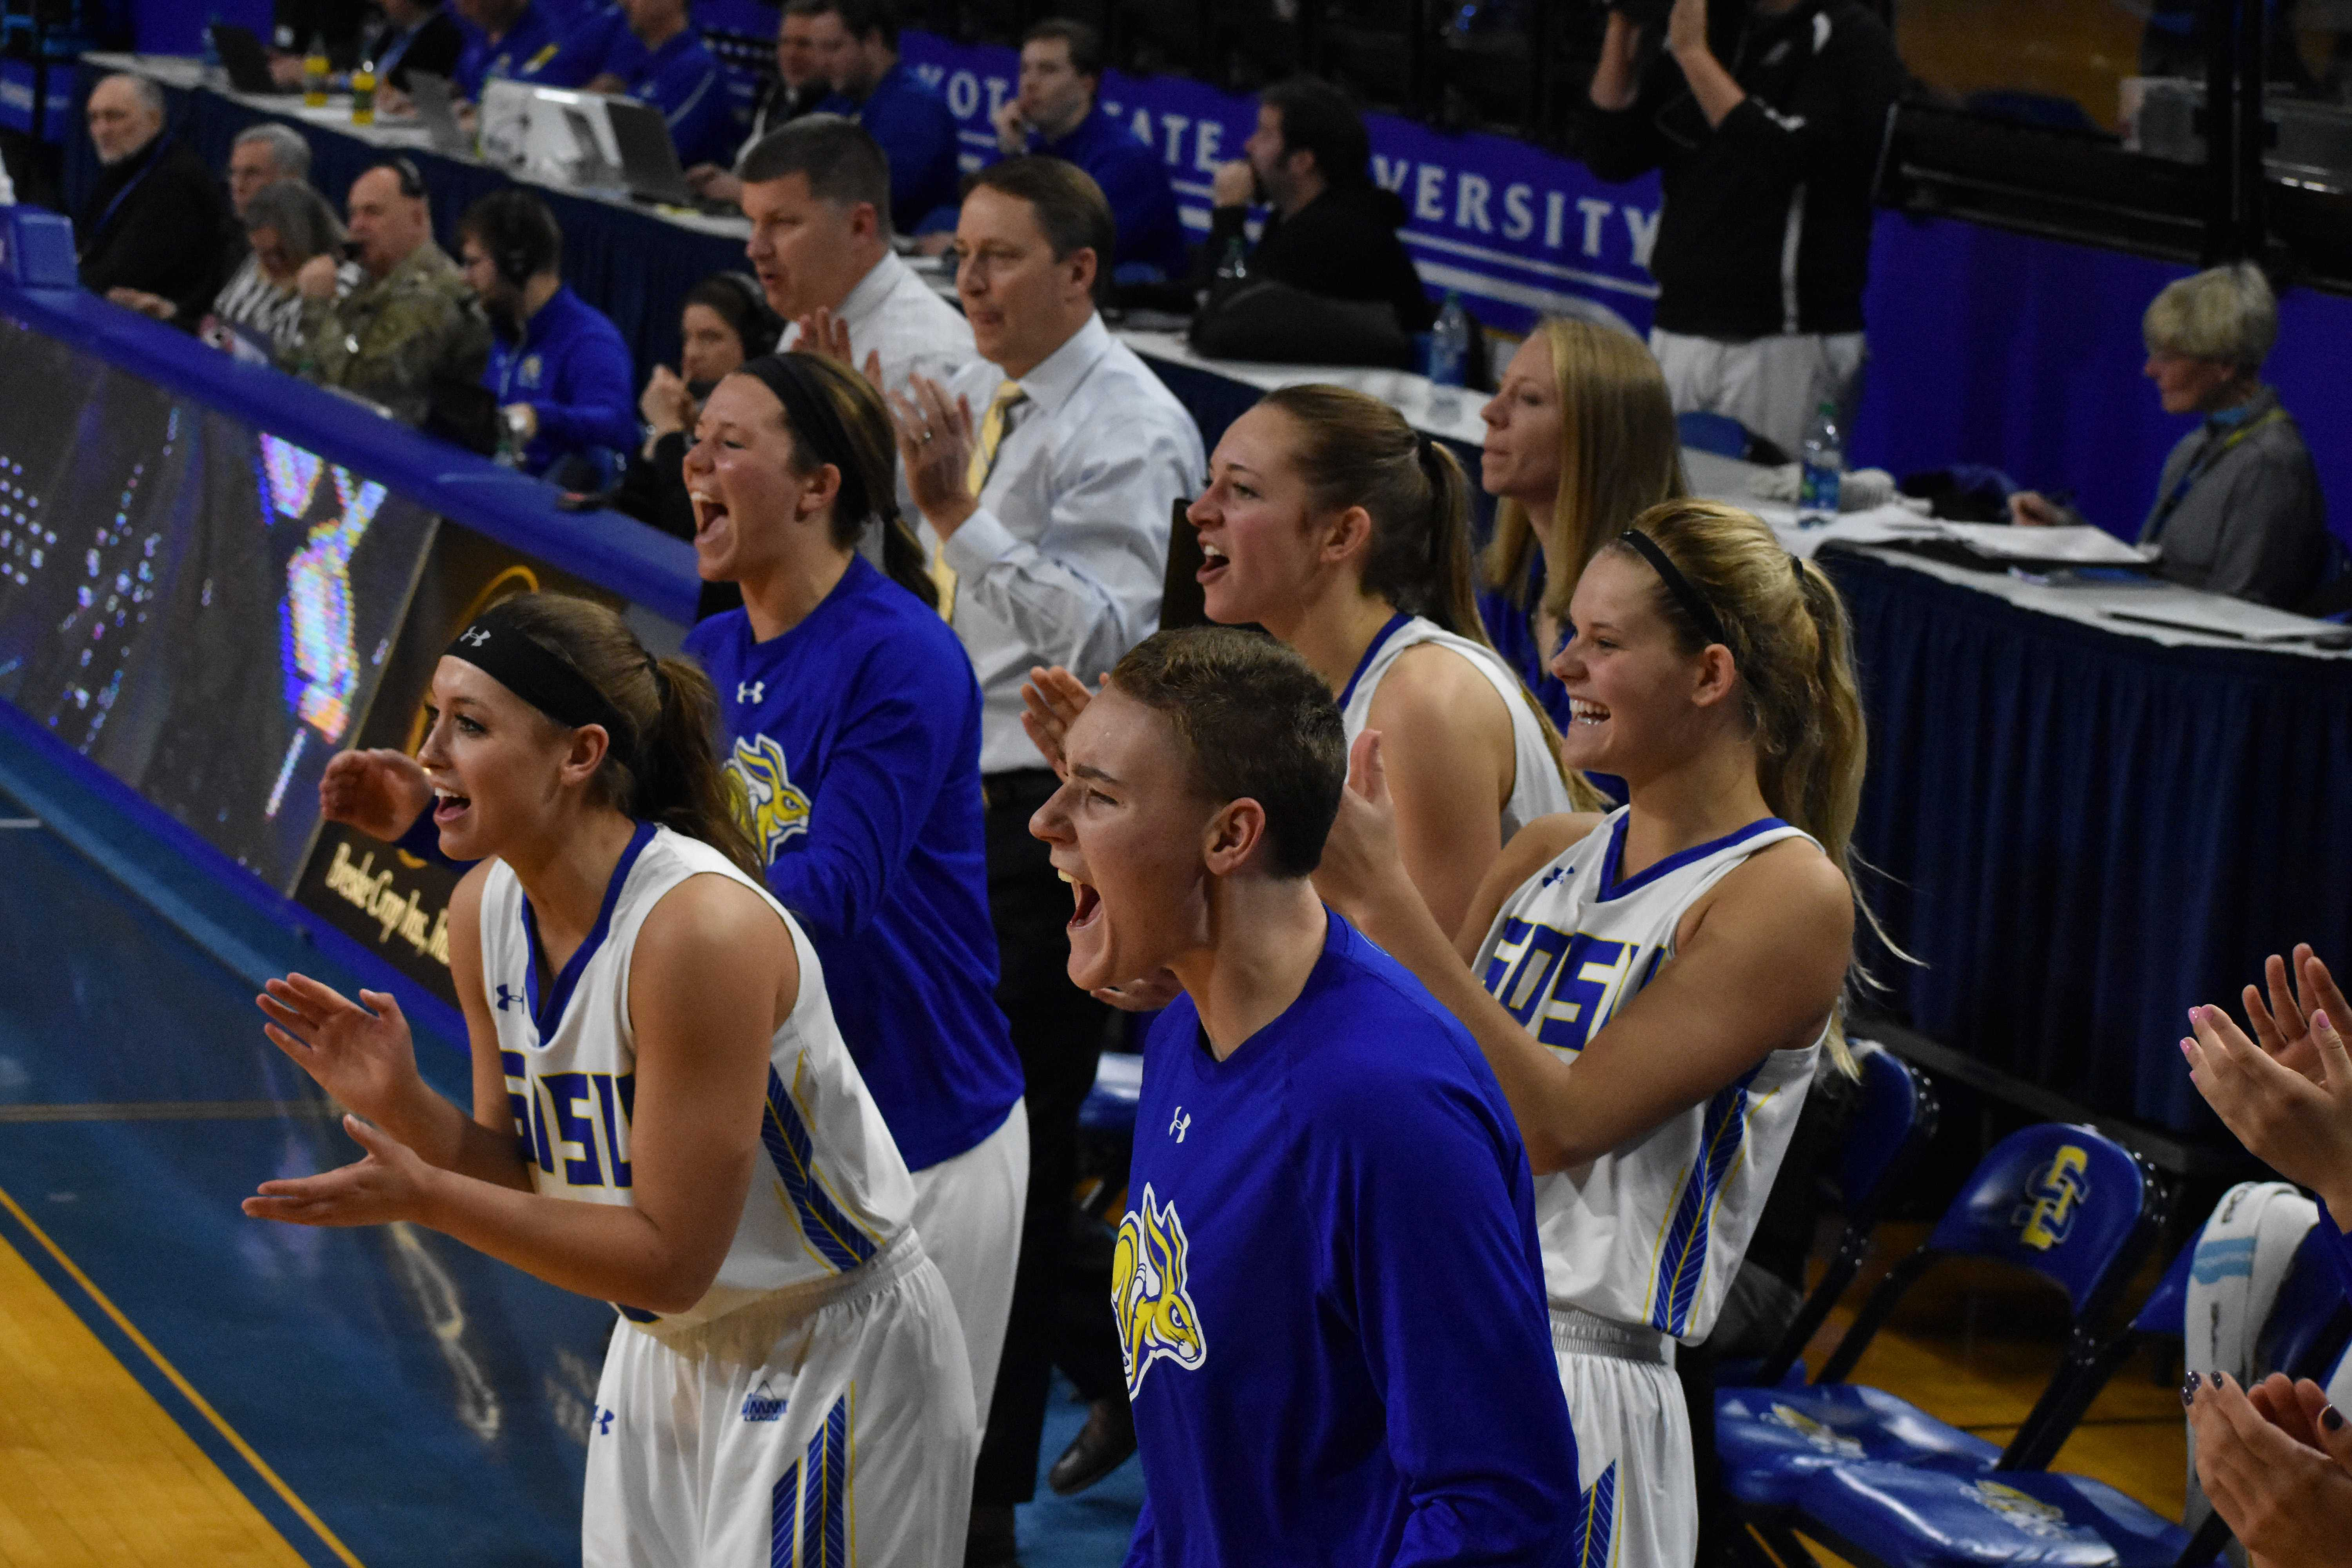 ABBY FULLENKAMP The Jacks celebrate a basket scored by Ellie Thompson (45) during the second half of the Jan. 6 game against NDSU in Frost Arena. The Jacks beat the Bison 83-63. The South Dakota State 2017-18 women's basketball roster has players from North Dakota, Minnesota, Nebraska and South Dakota. Recruiting the best players from around the region has put The Jacks at the top the Summit League with a 15-4 record.